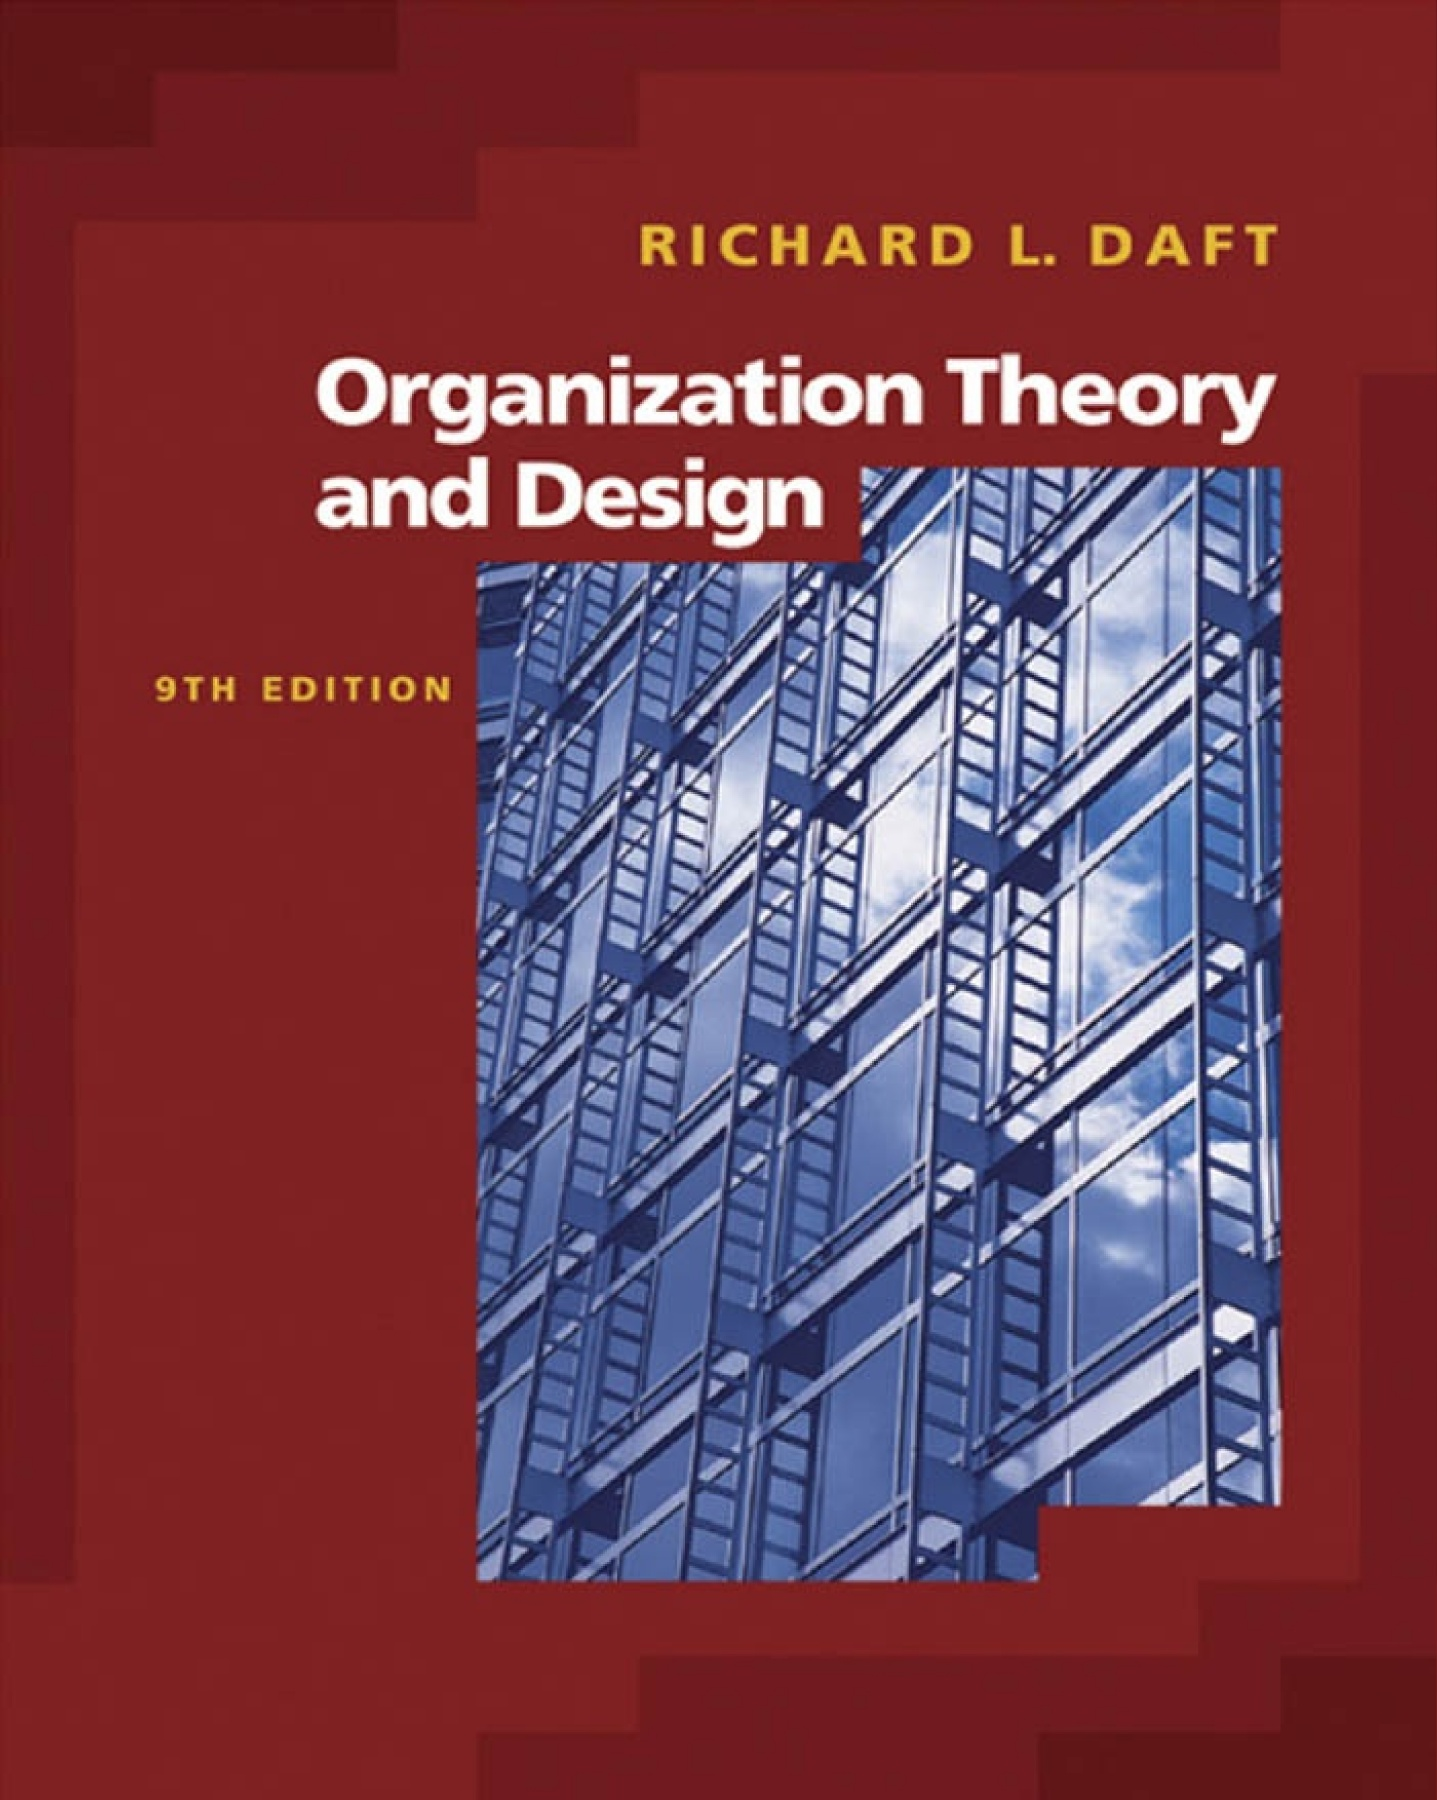 Organization Theory And Design Pages 1 50 Text Version Anyflip